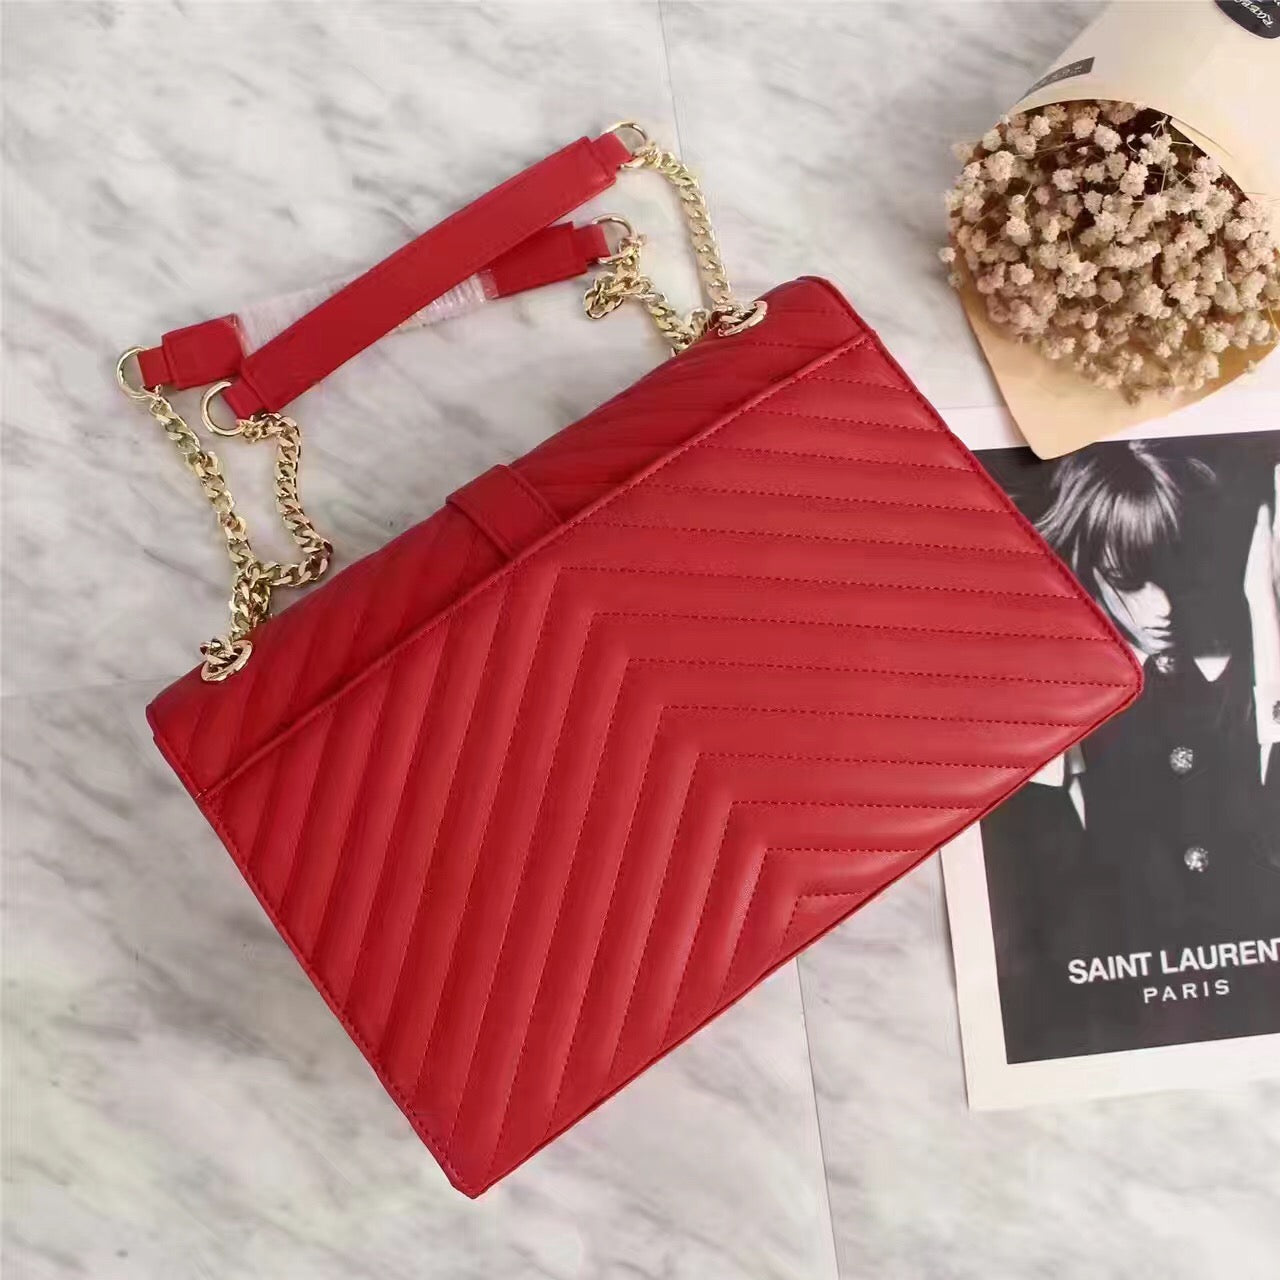 Bolsa Lou Lou Chain YSL Saint Laurent - Loja Must Have